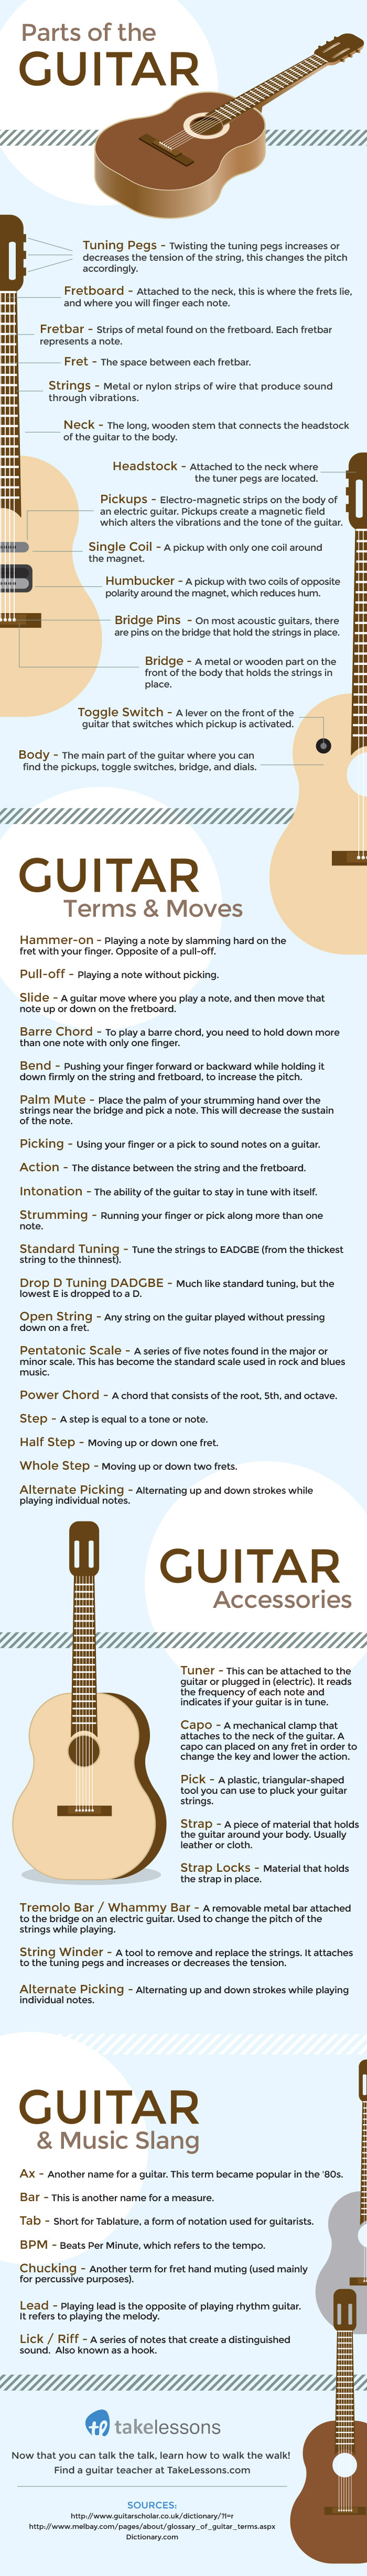 easy guitar terms